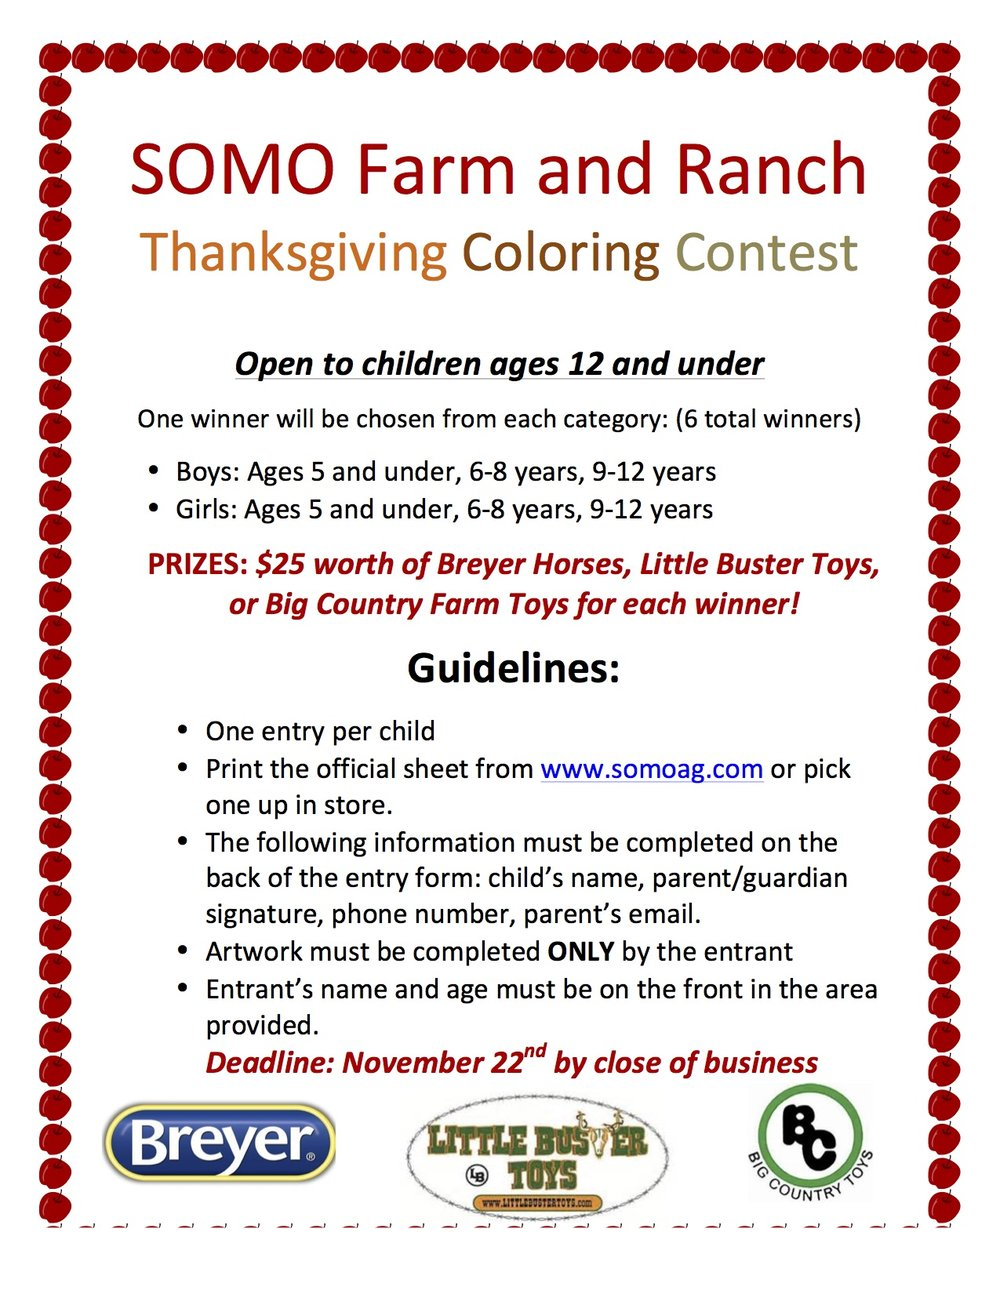 SoMo Farm and Ranch Thanksgiving Coloring Contest